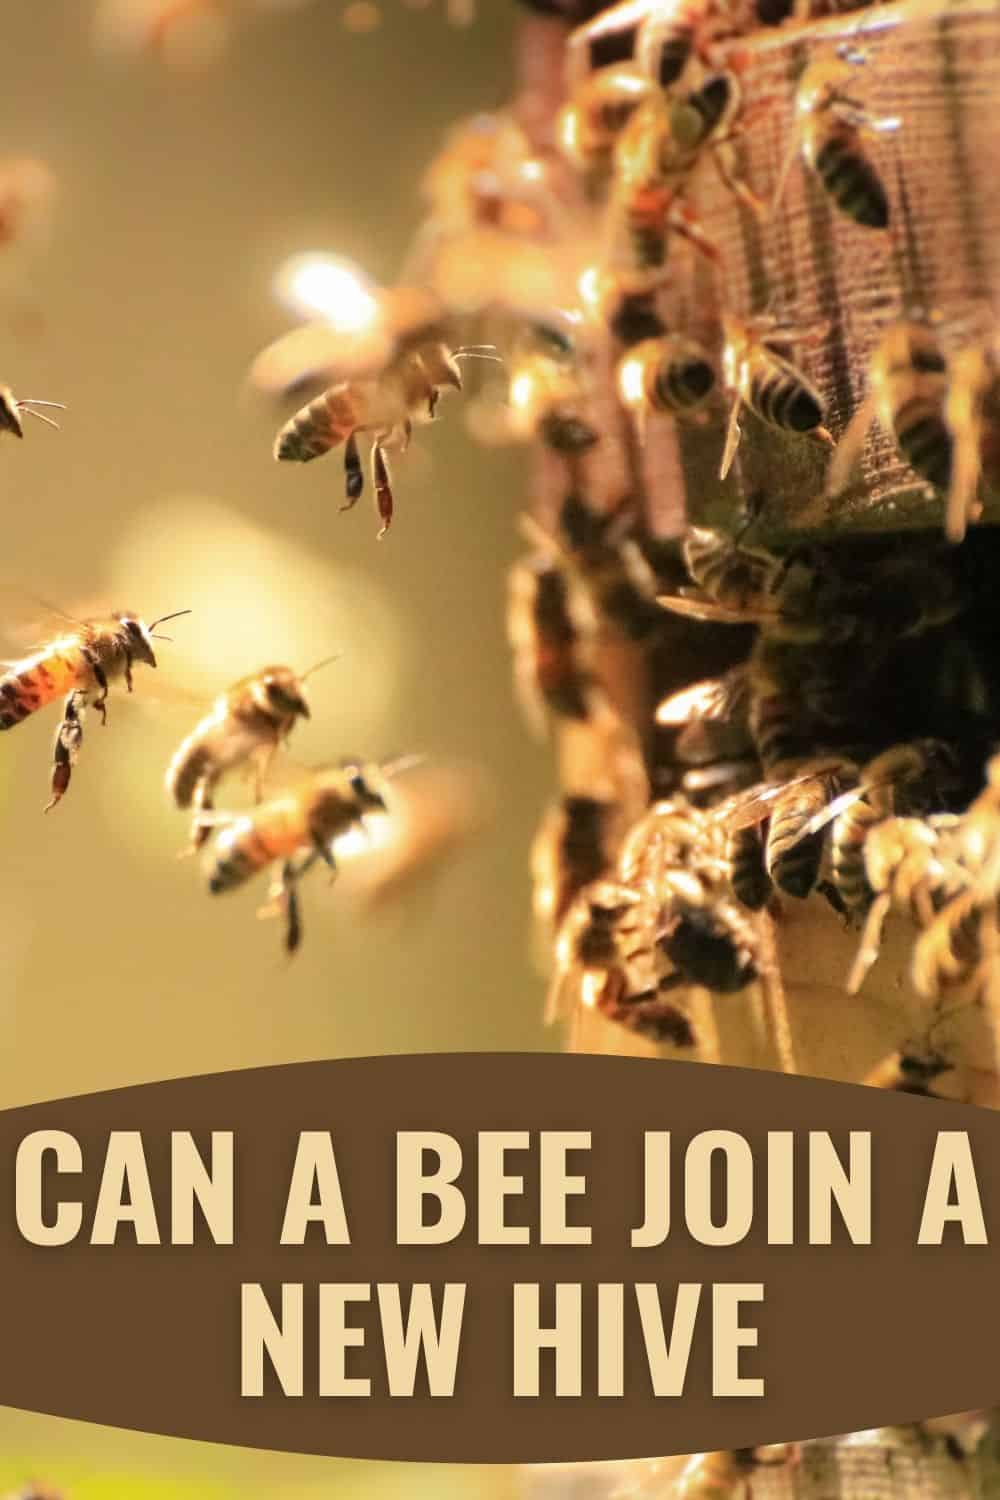 Can a bee join a new hive